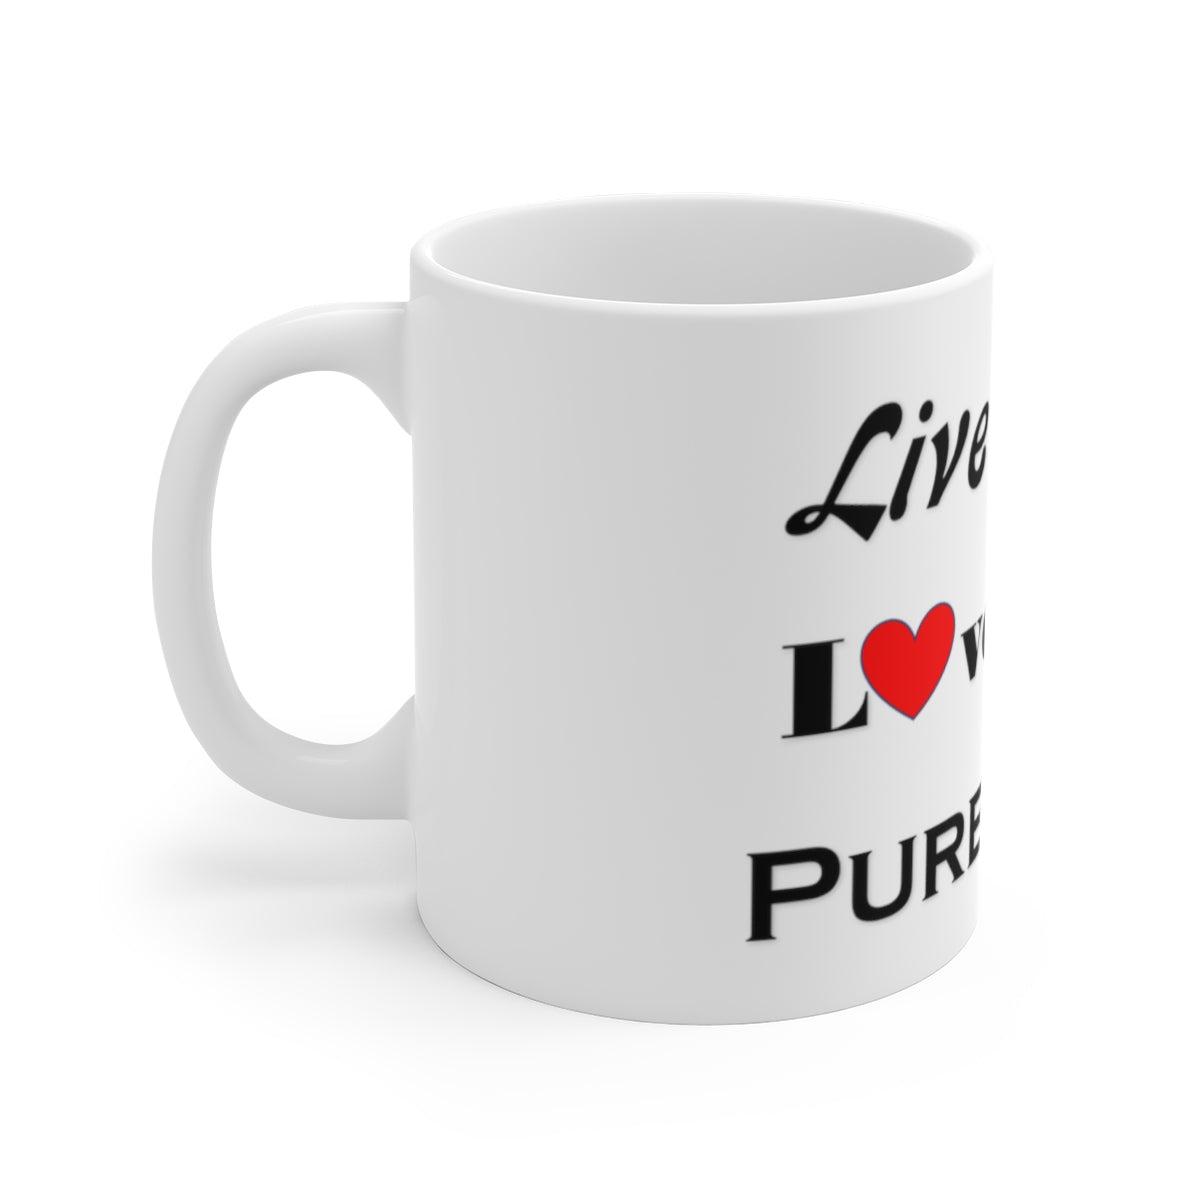 Sassy & Swag Collections - Live Sassy Love Sassy Pure Sassy White Ceramic Mug